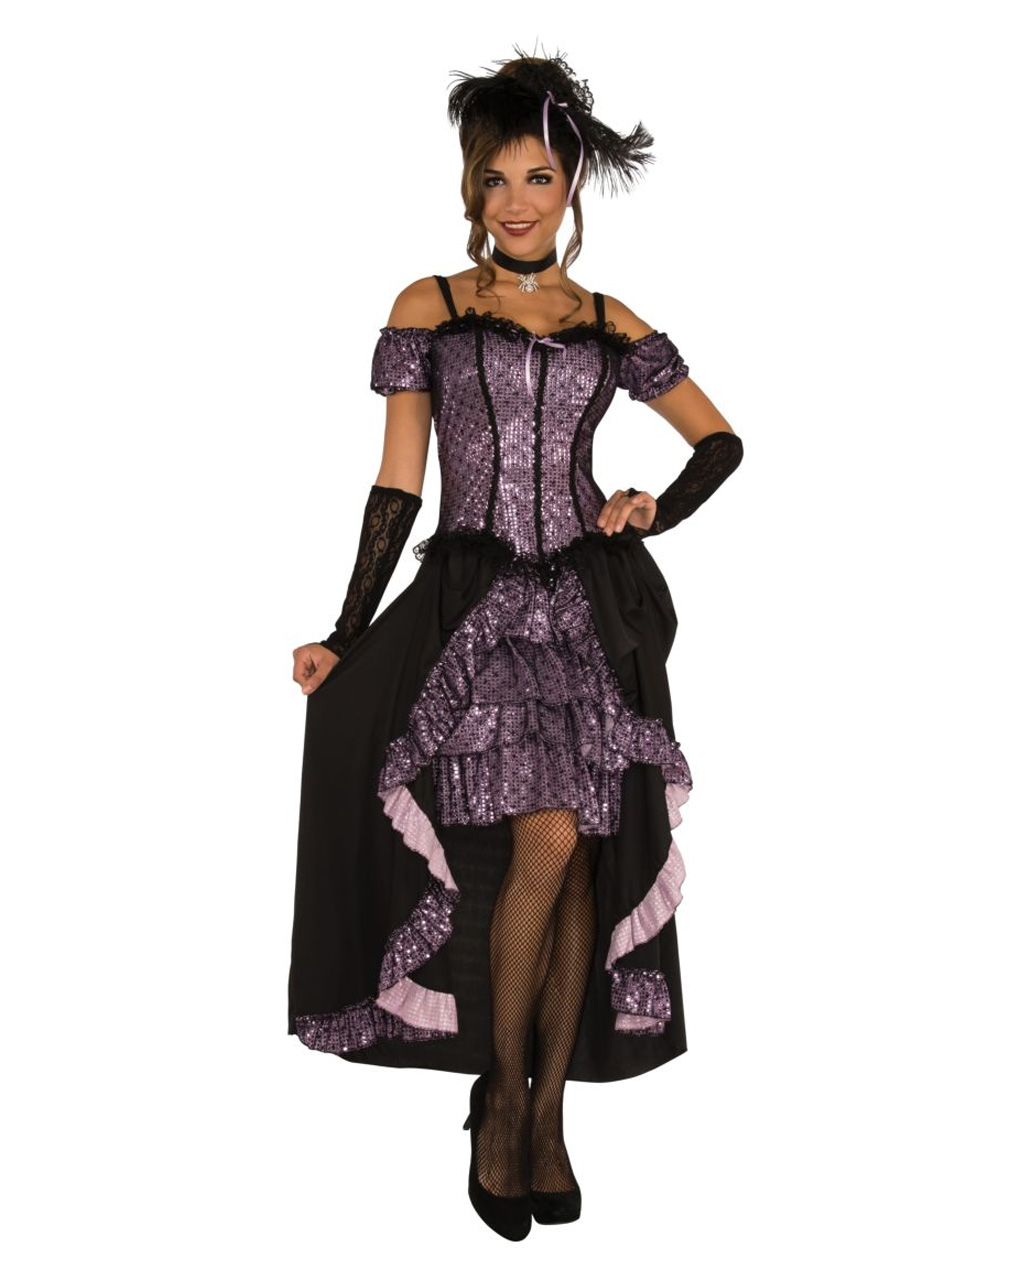 Thigh Highs ONLY Burlesque Dance Costume Can Can Saloon Girl Halloween Leggings